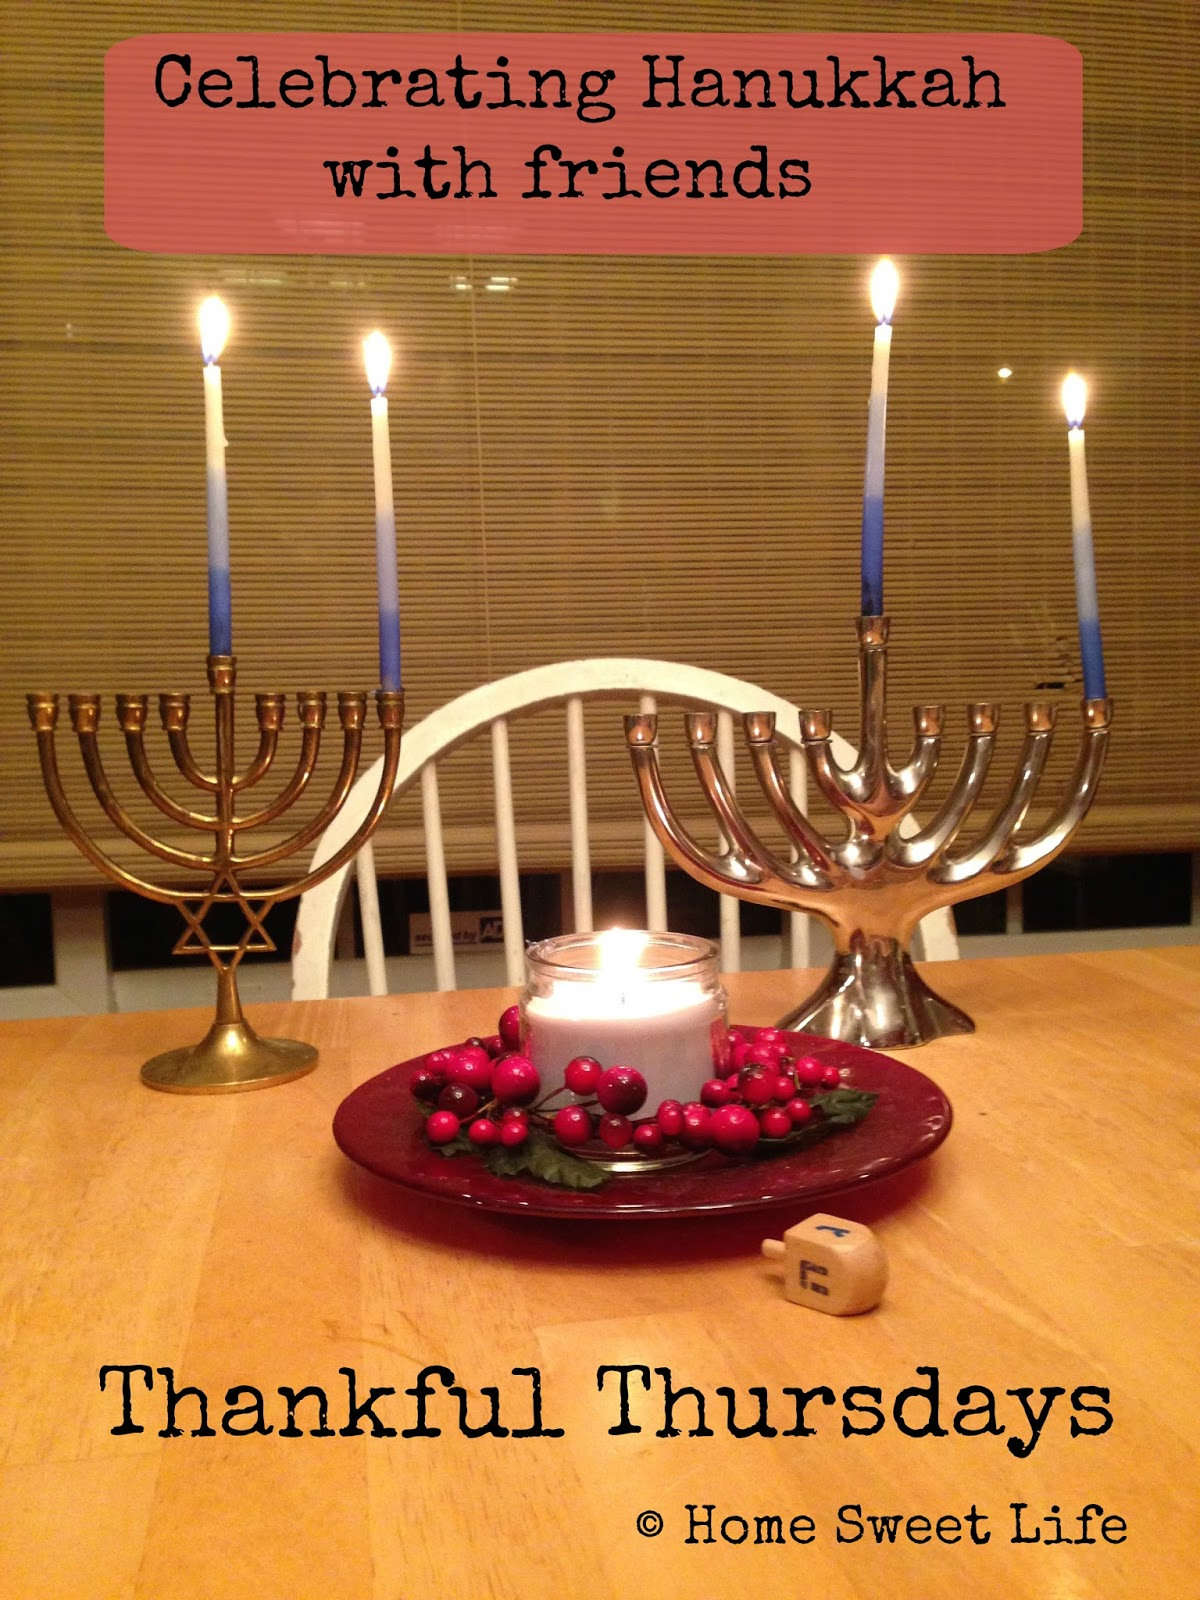 Hanukkah blessings, rejoicing